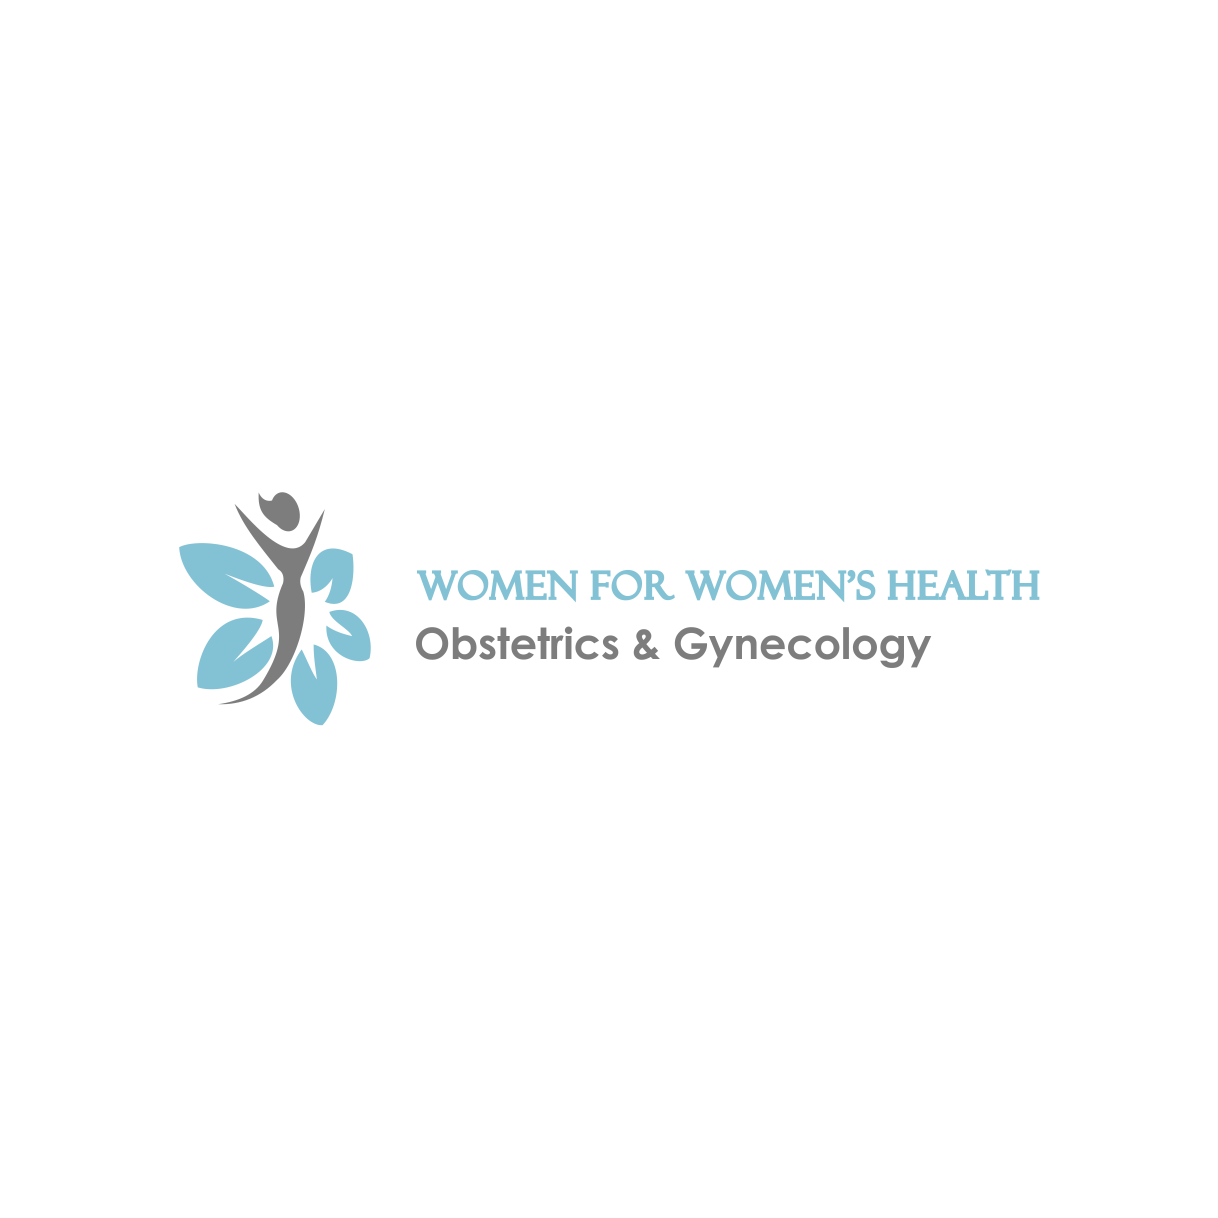 Women for Womens Health